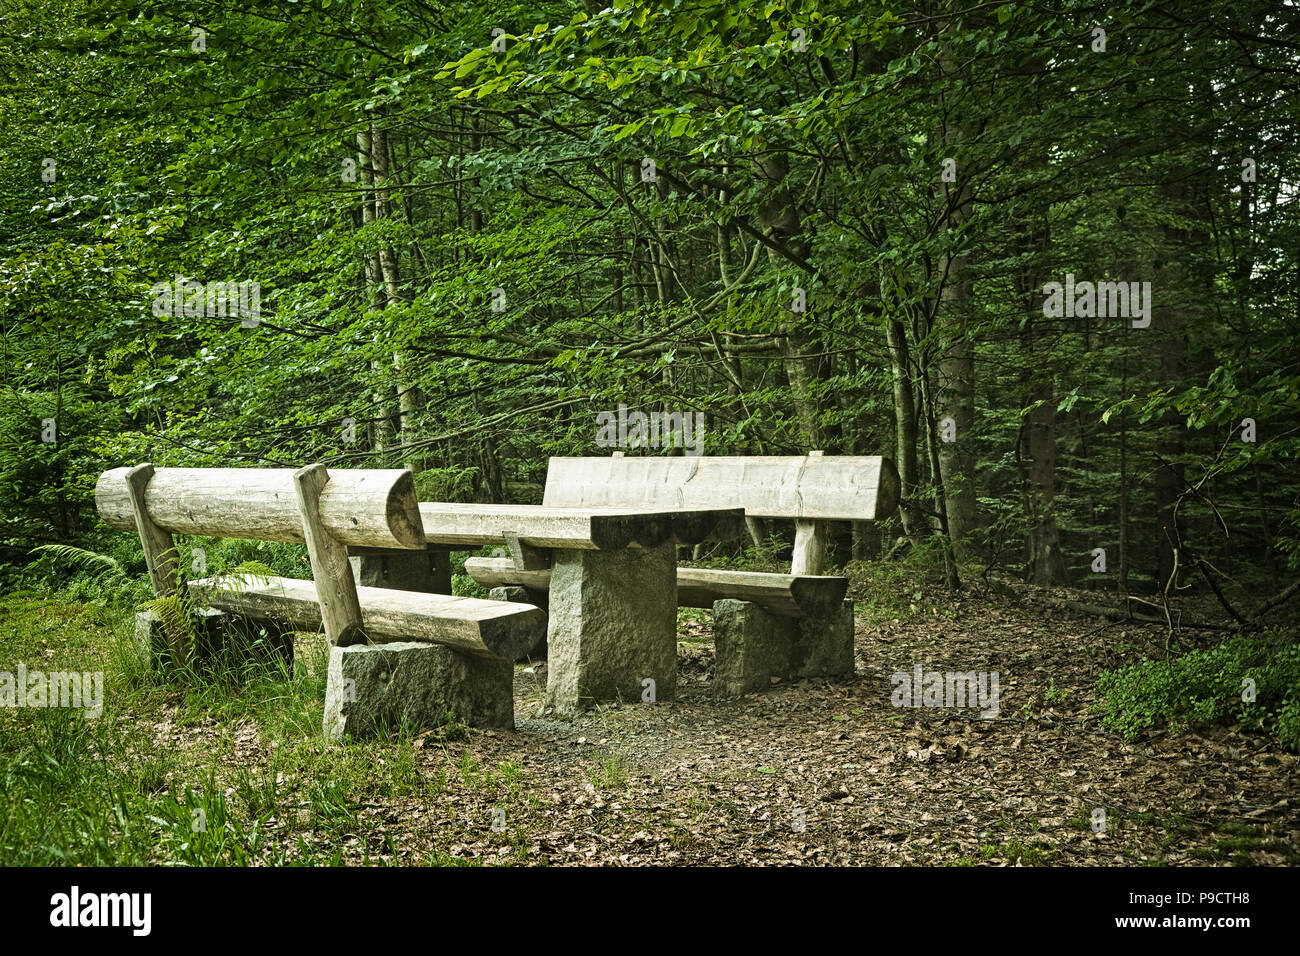 Groovy Wooden Picnic Table And Seats Stock Photos Wooden Picnic Gamerscity Chair Design For Home Gamerscityorg